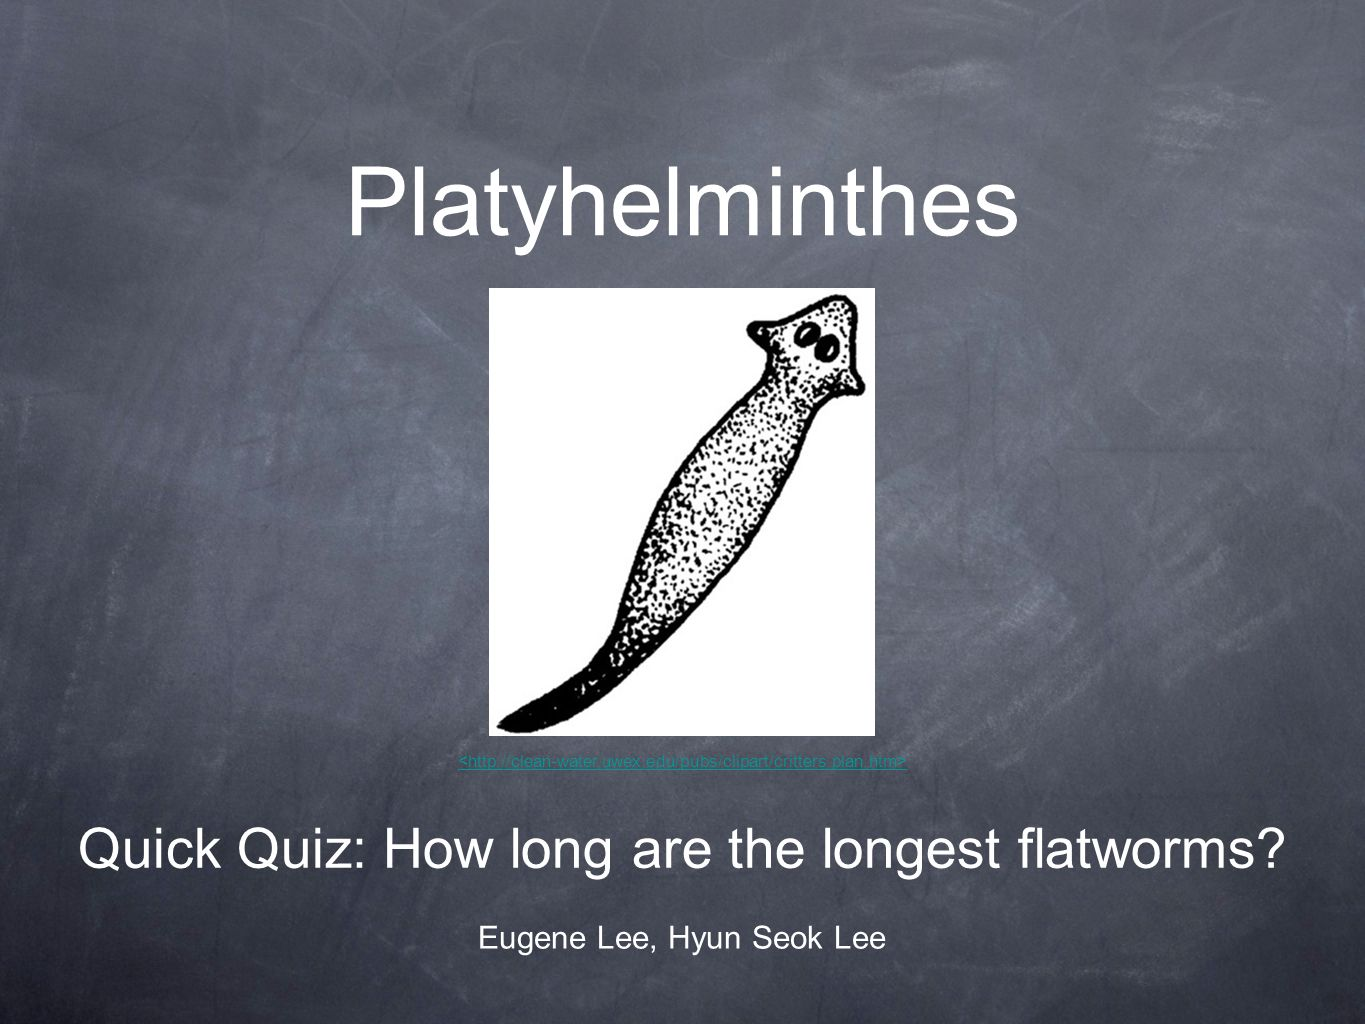 Platyhelminthes Quick Quiz: How long are the longest flatworms